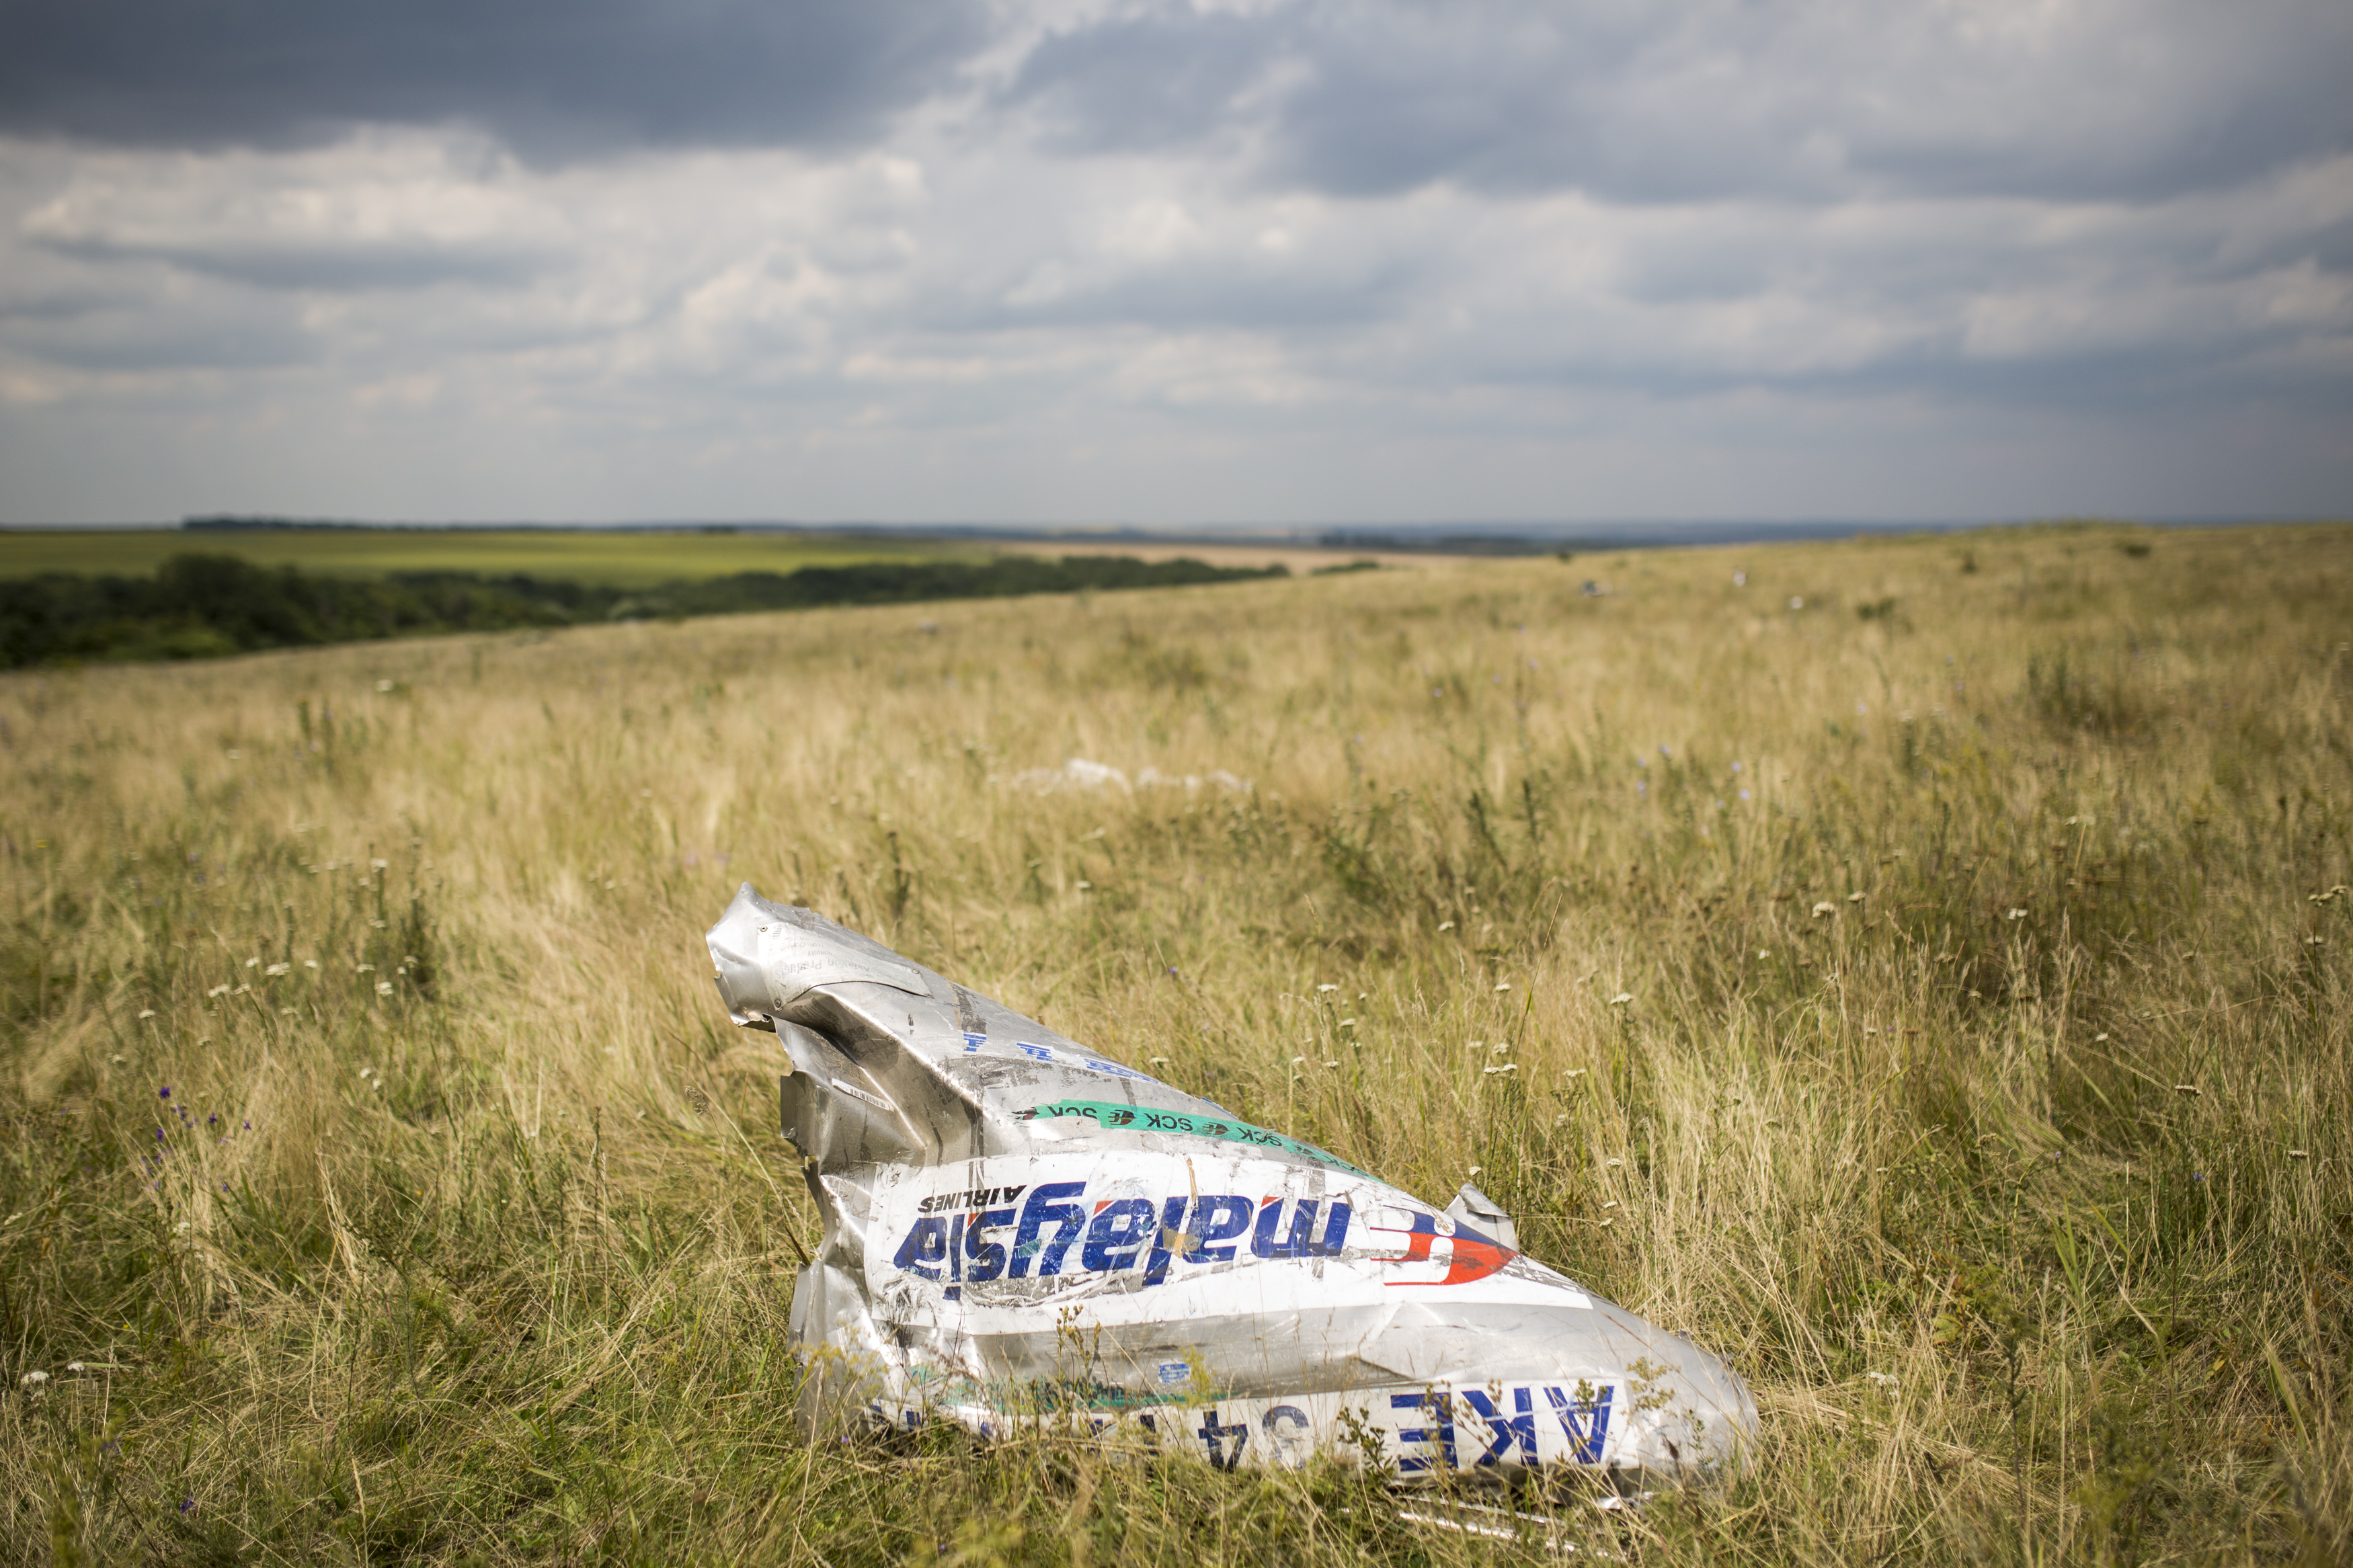 Wreckage from Malaysia Airlines flight MH17 lies in a field on July 22, 2014 in Grabovo, Ukraine.